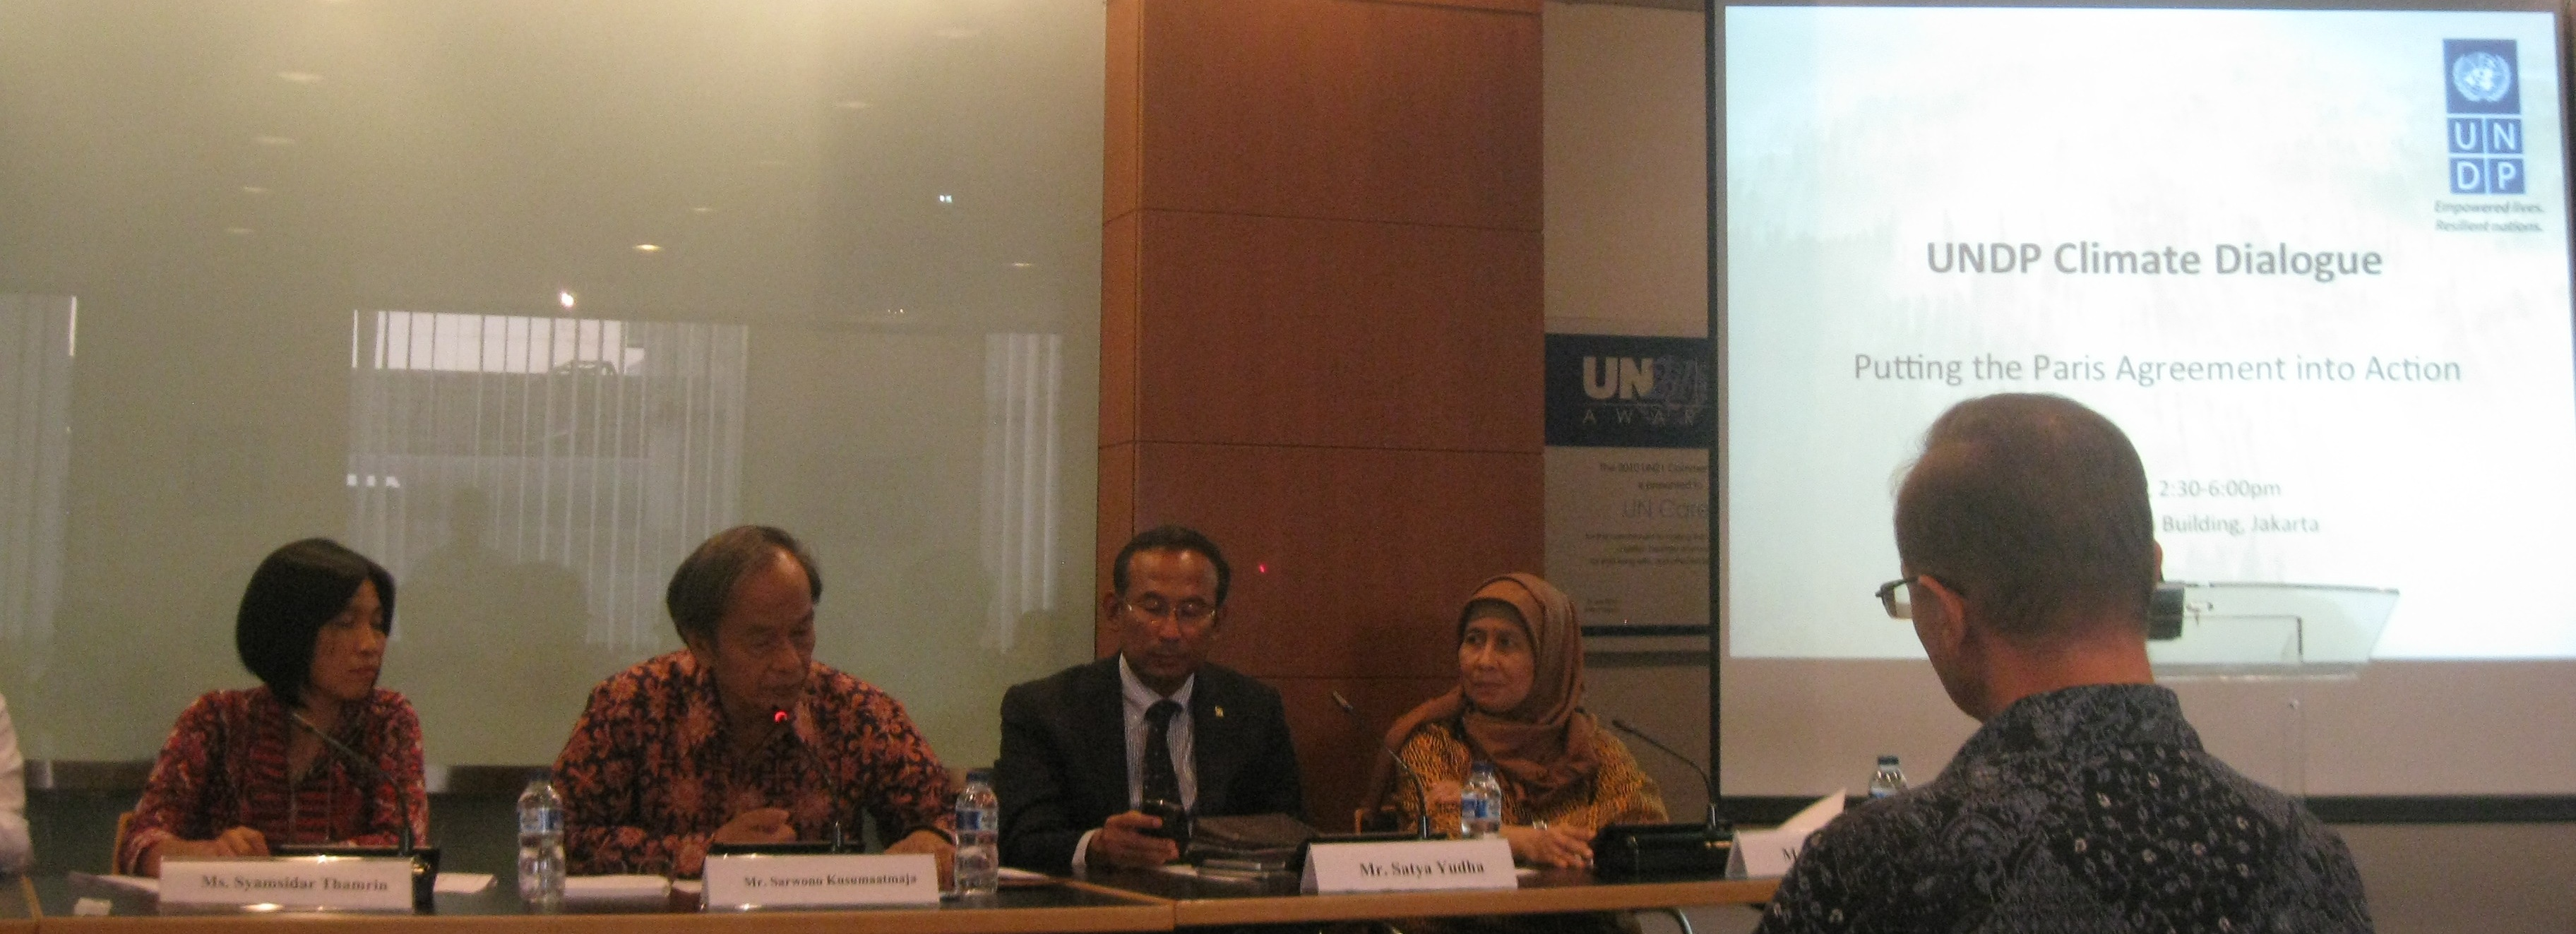 Putting the Paris Agreement into Action (Dialog Iklim UNDP, Jakarta, 08/06/2016)